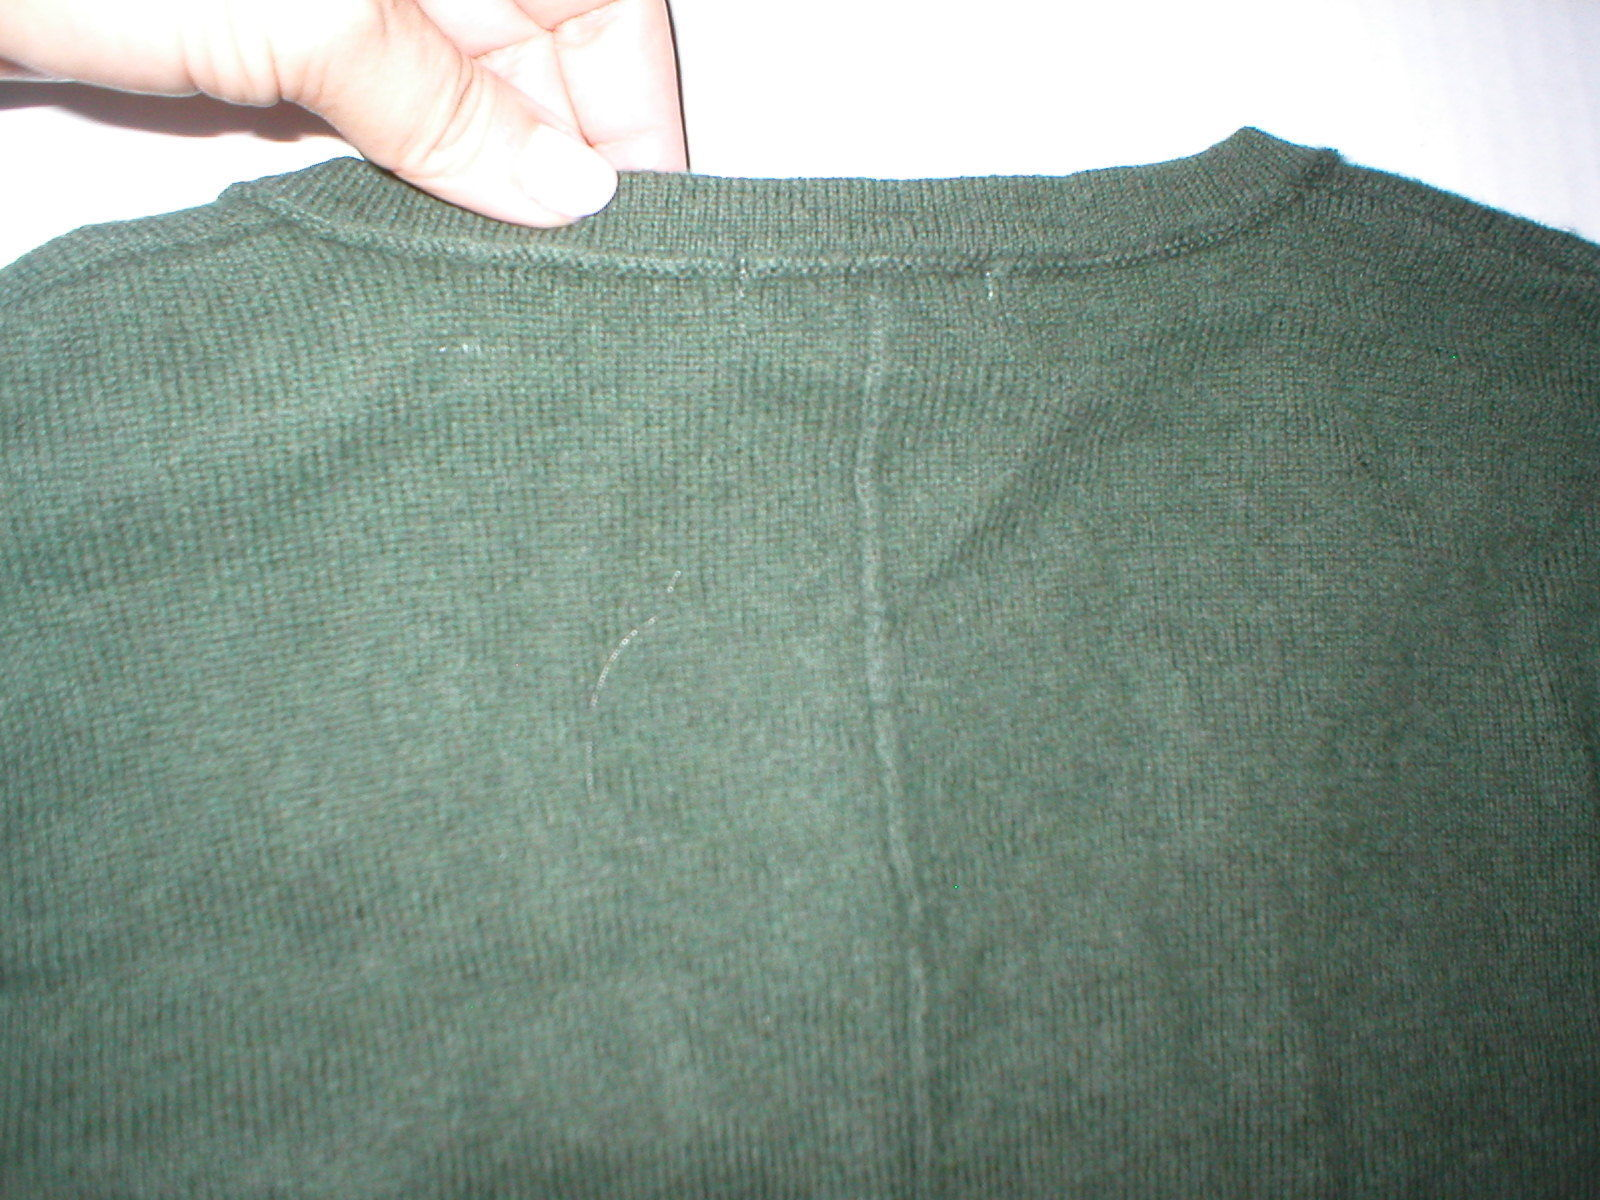 NWT New Womens Sweater Extra Soft Gabriella Rossi Cashmere S Dark Green 2 ply image 5